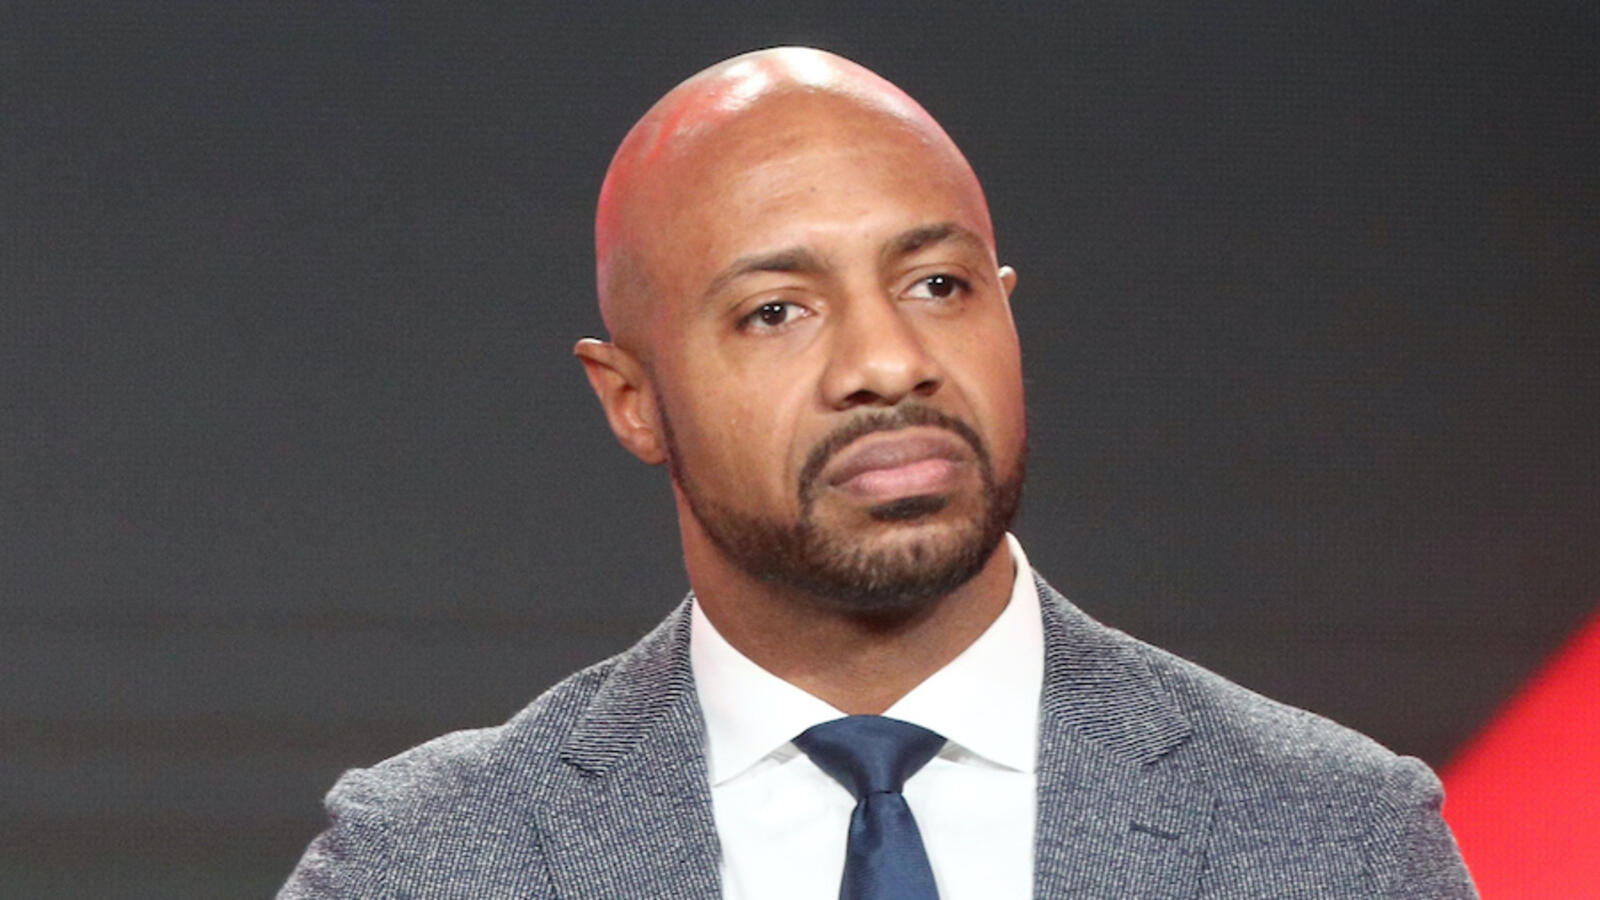 Jay Williams Blames Hacker For Glaring Mistake About New Celtics Coach